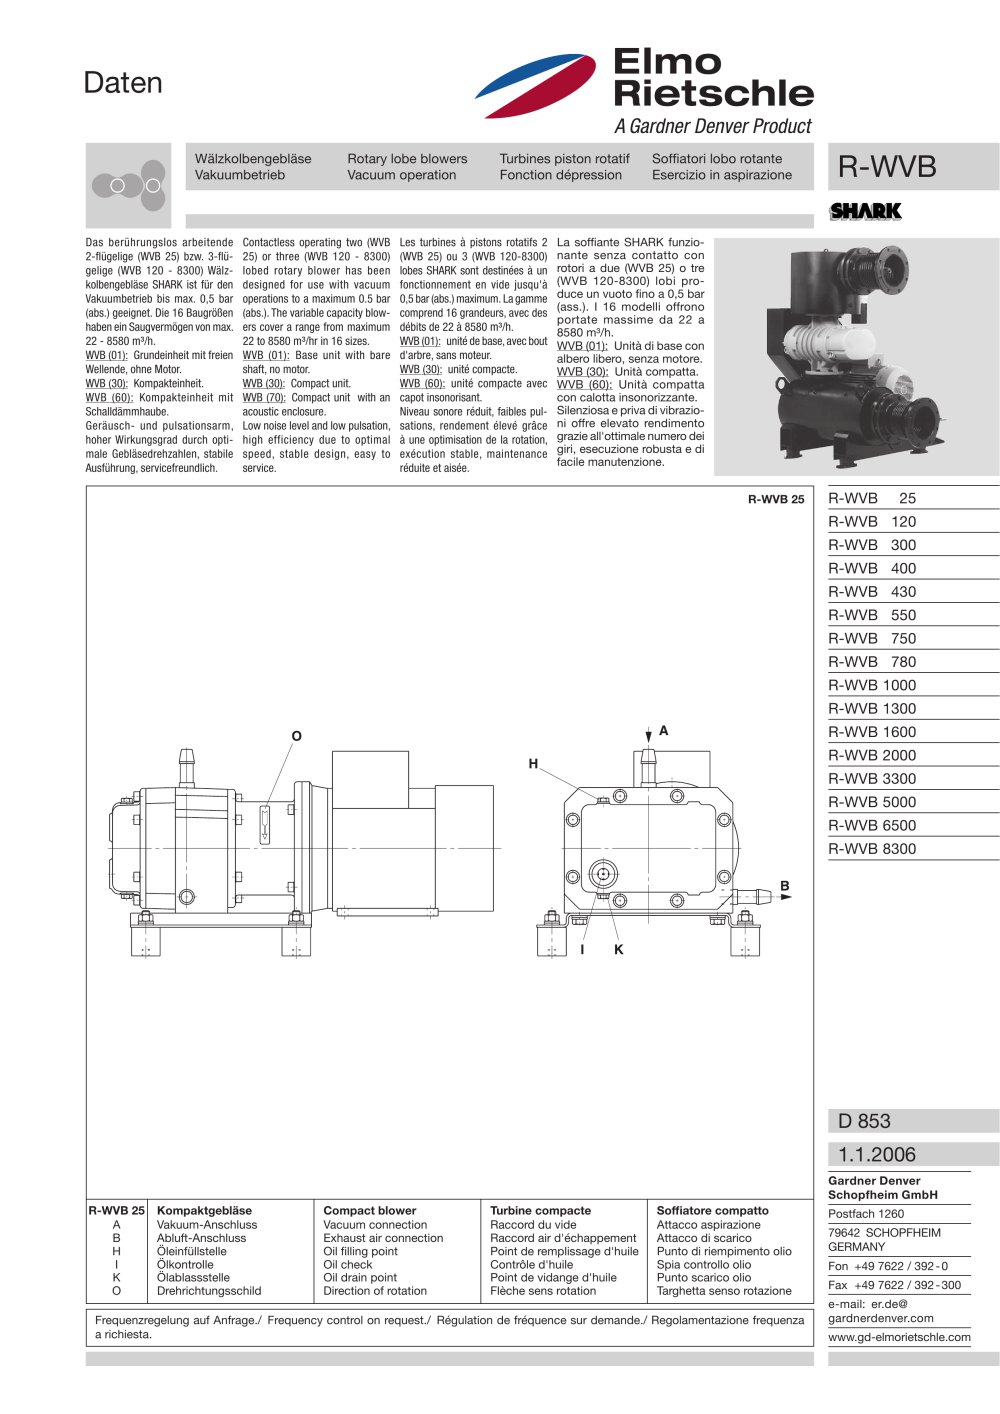 R Wvb Elmo Rietschle Pdf Catalogue Technical Documentation Gardner Denver Motor Wiring Diagrams 1 4 Pages